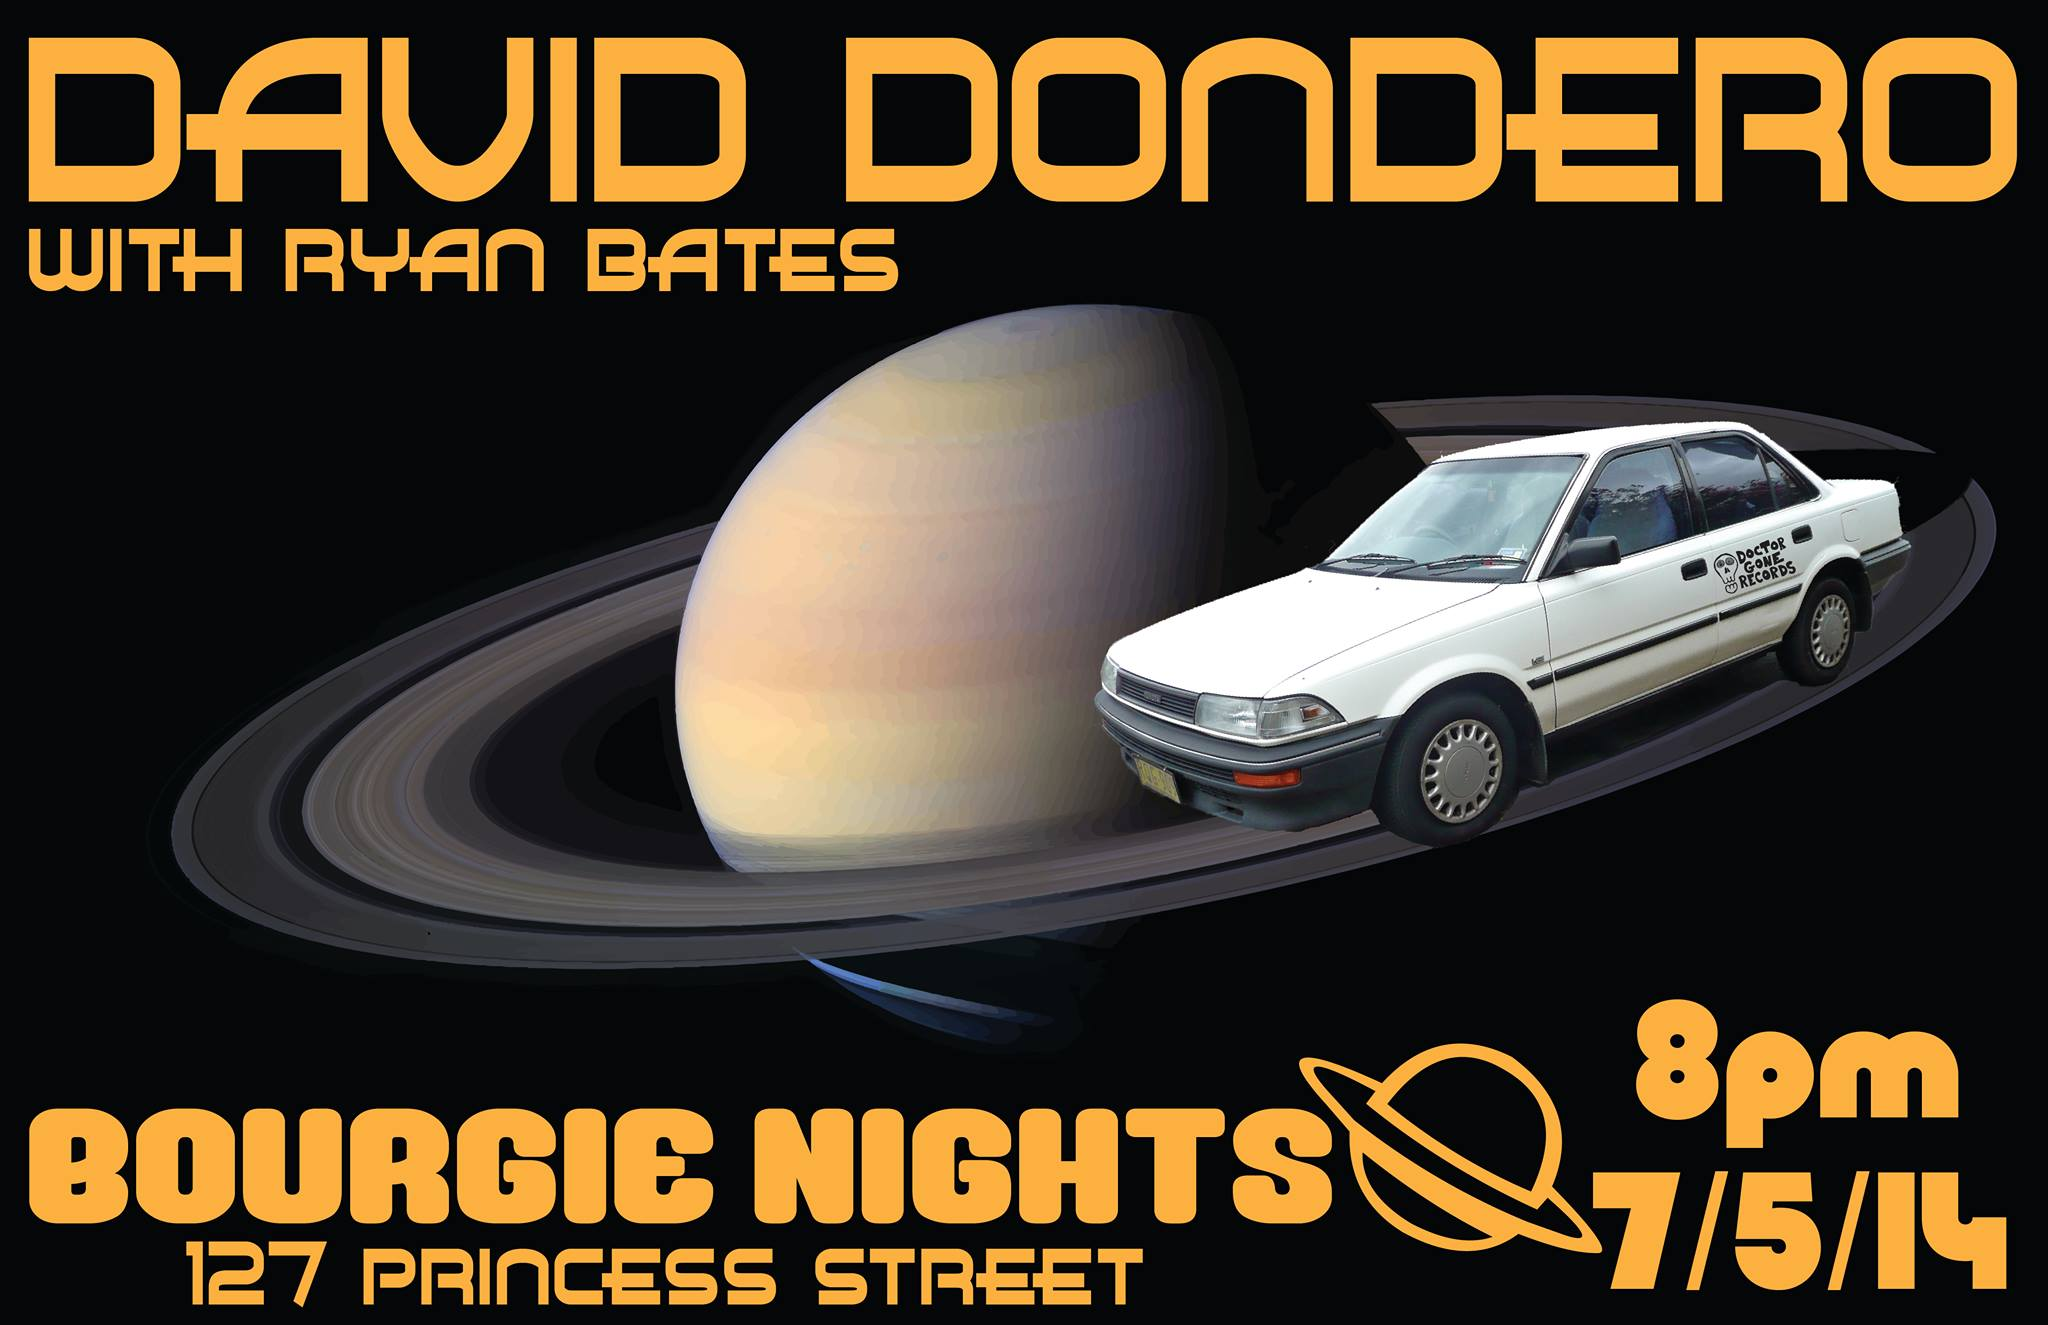 7-5-2014 b nights dondero